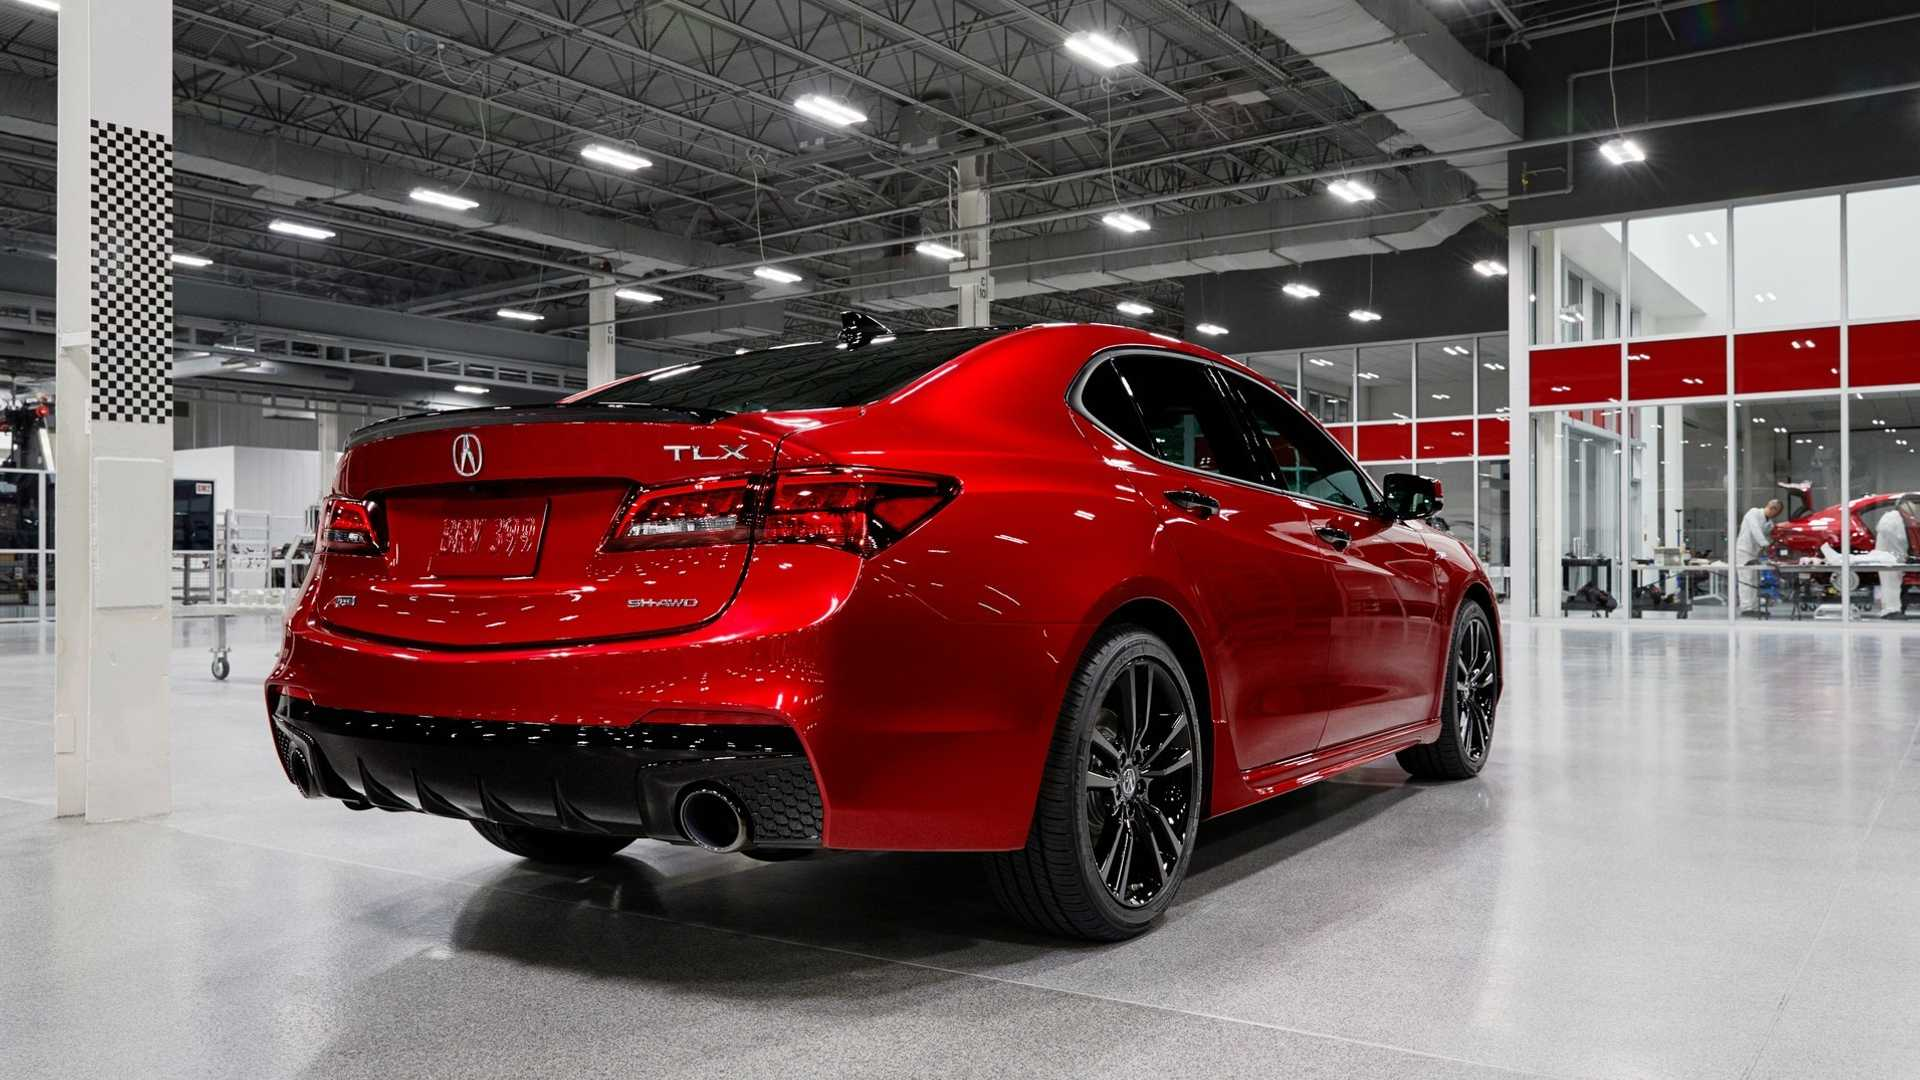 2020-acura-tlx-pmc-edition (2).jpg